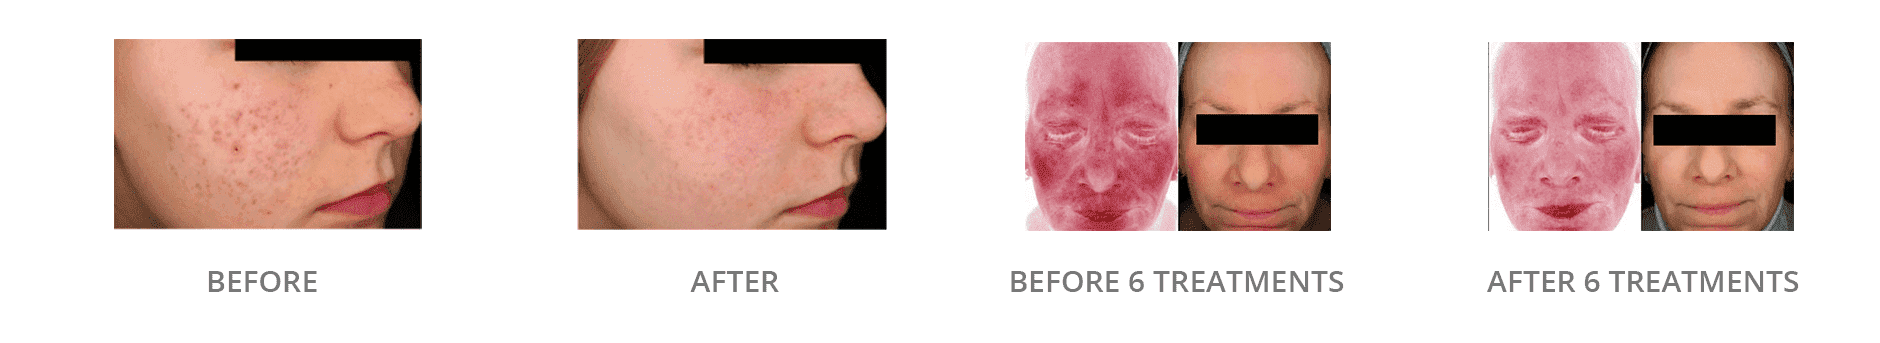 Laser Genesis Before And After Gallery Blaine Mn Associated Skin Care Specialists